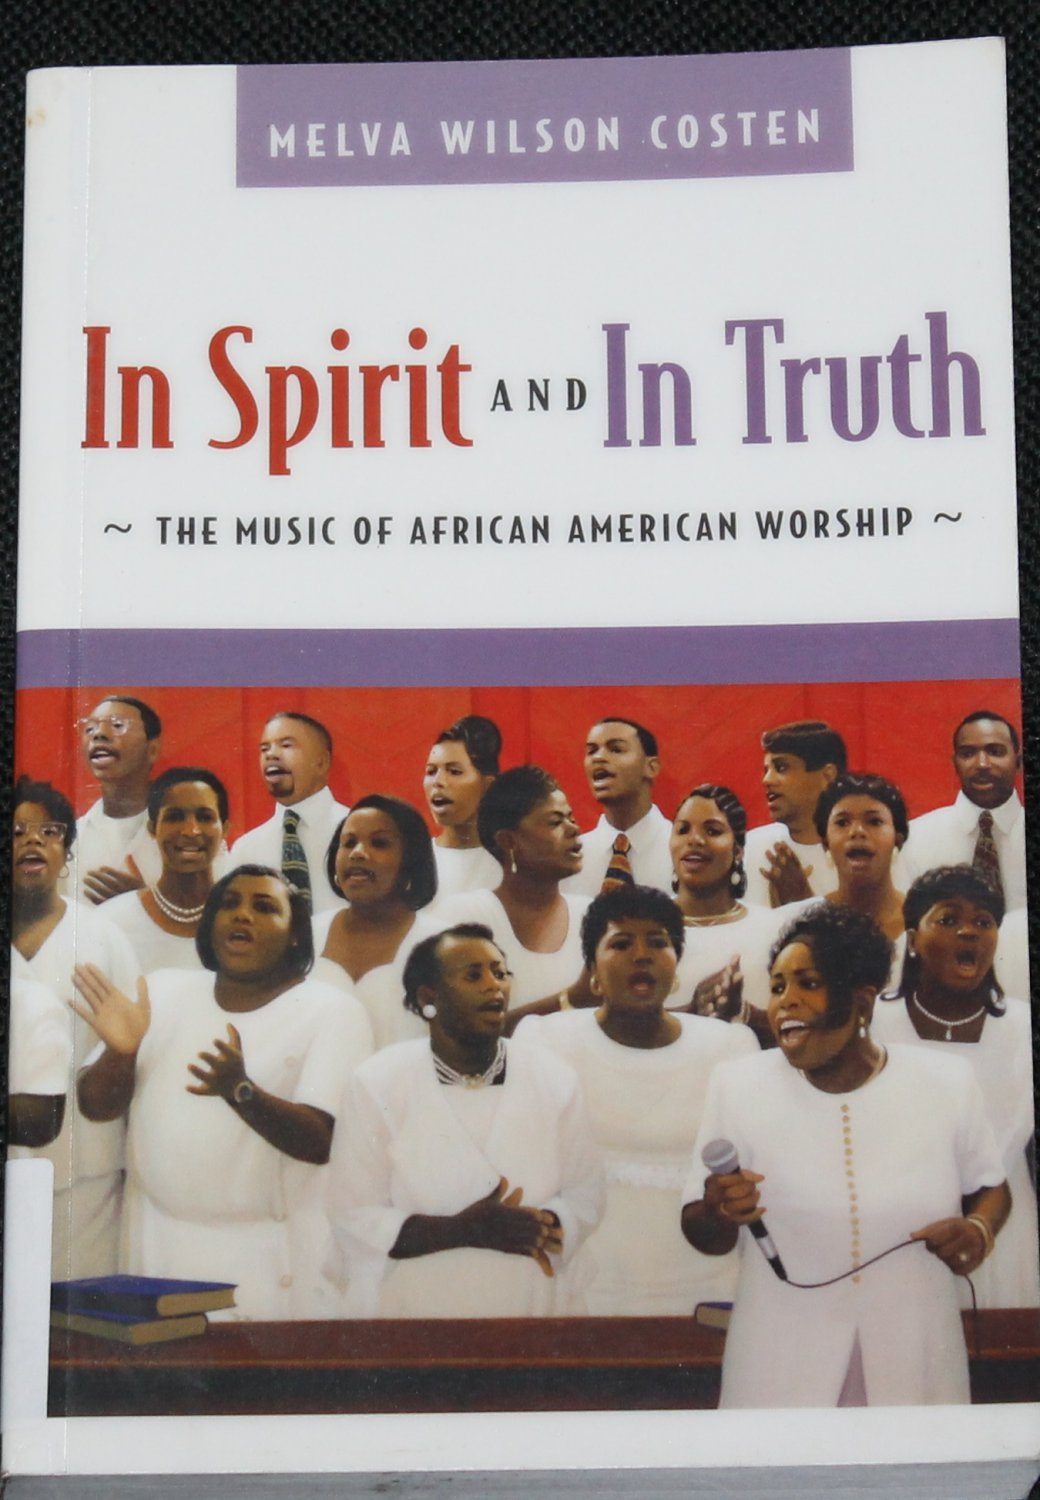 In the Spirit In the Truth - Christian religious book